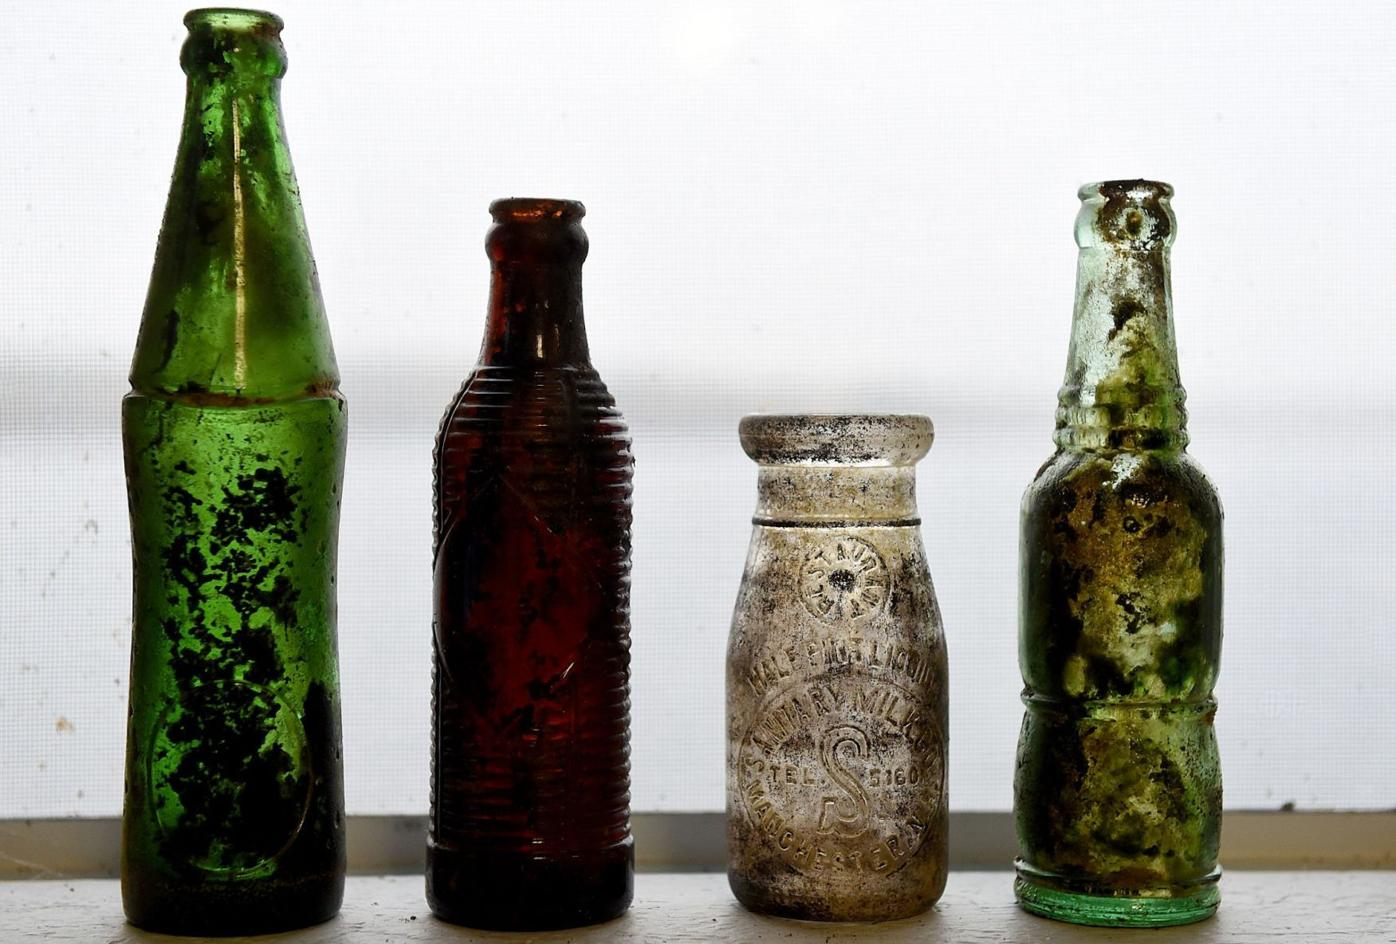 Bottle discoveries